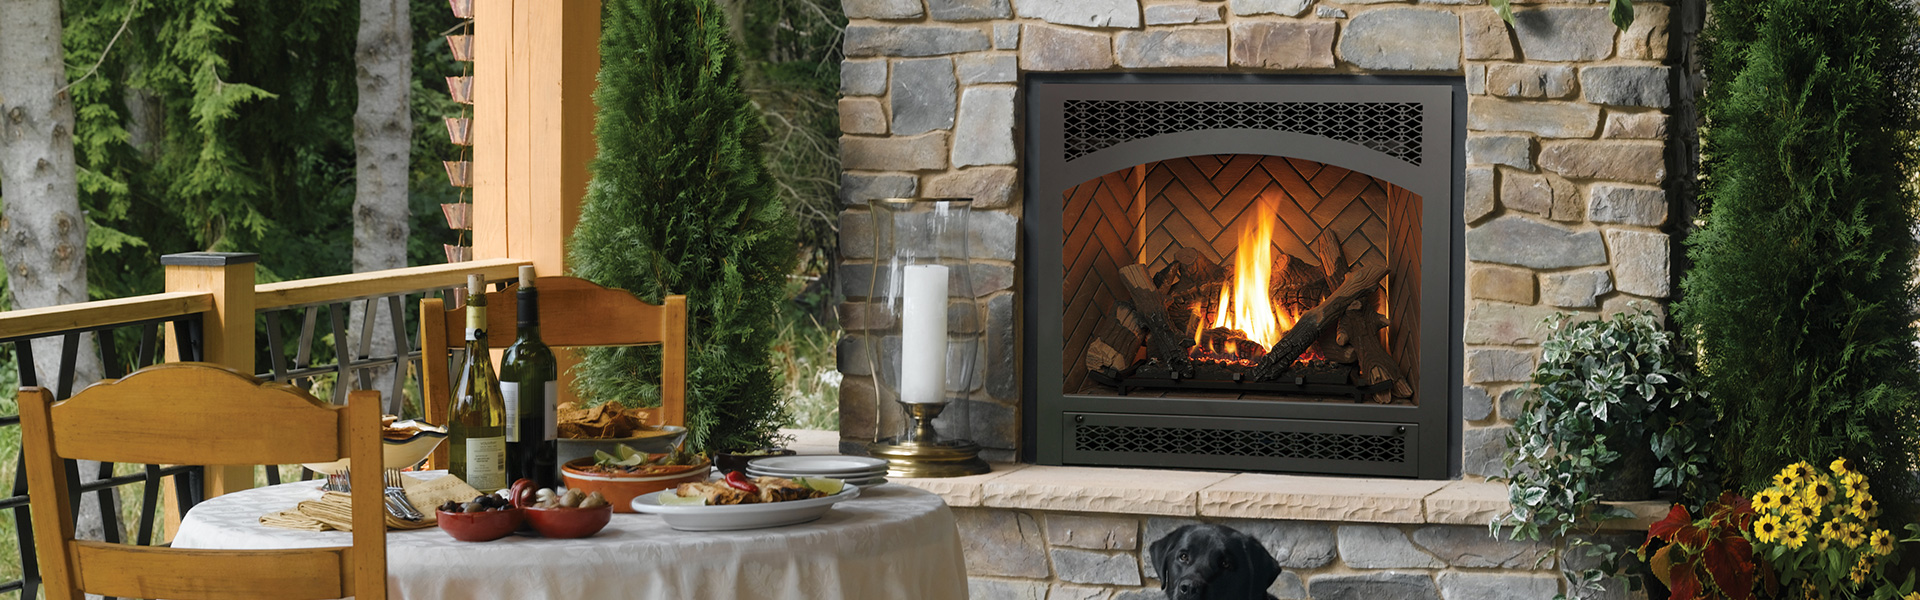 Avalon Gas Fireplace Inserts Avalon Fireplaces Northstar Spas